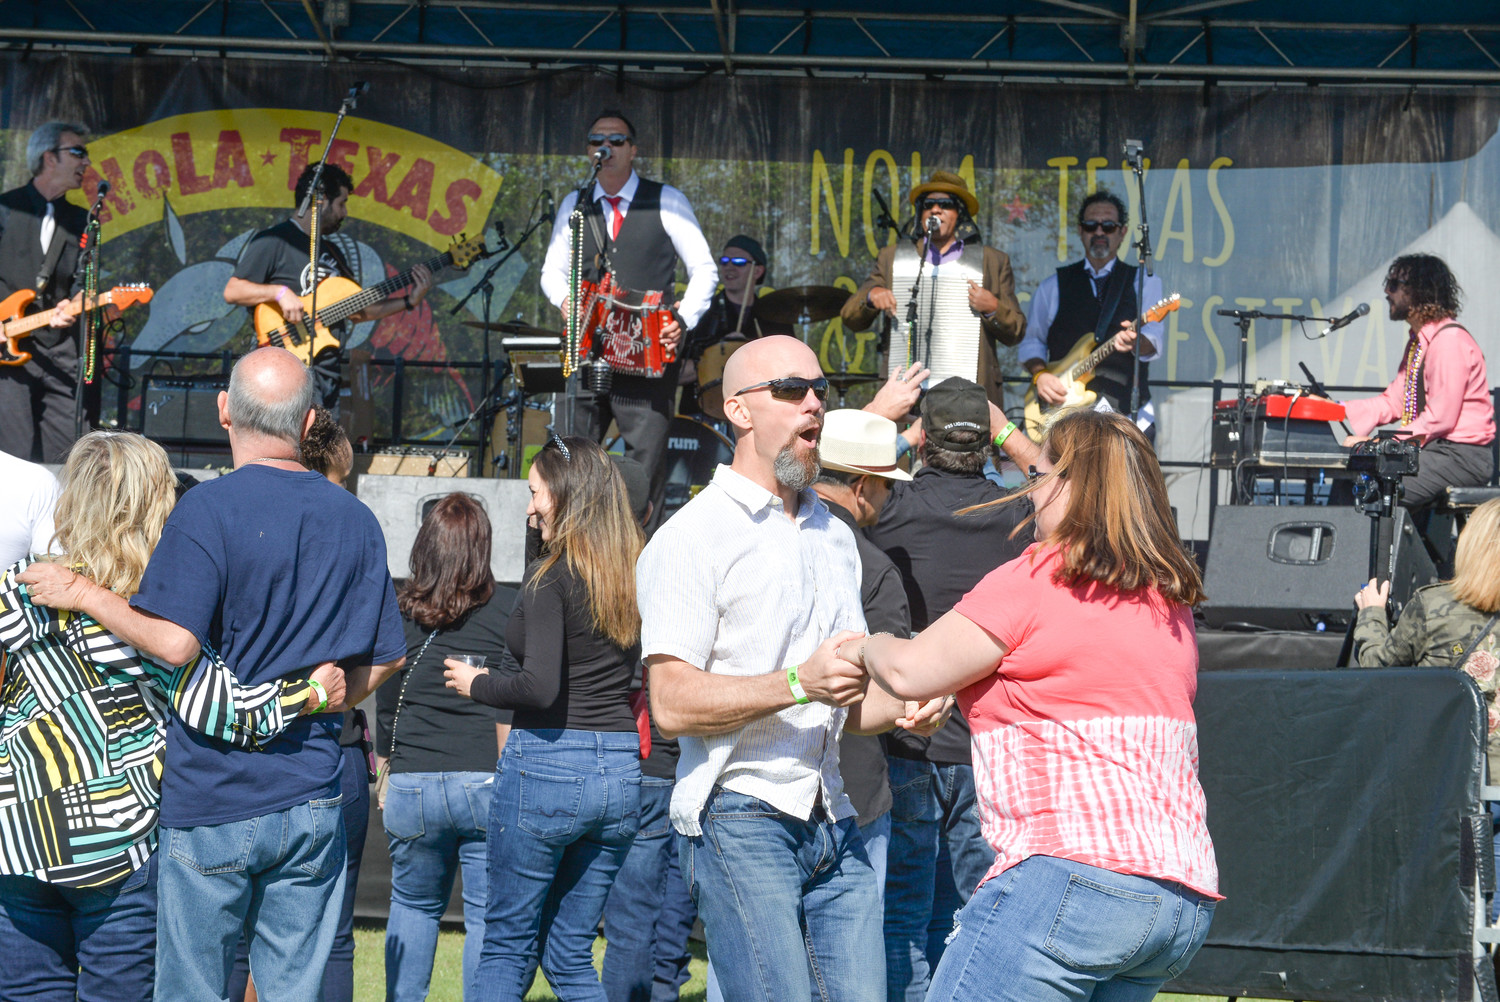 Plenty of sunshine greeted revelers who came to the H-E-B Center on Sunday, April 8th to enjoy a taste of New Orleans with  live Zydeco music, dancing, and plenty of Cajun fare.